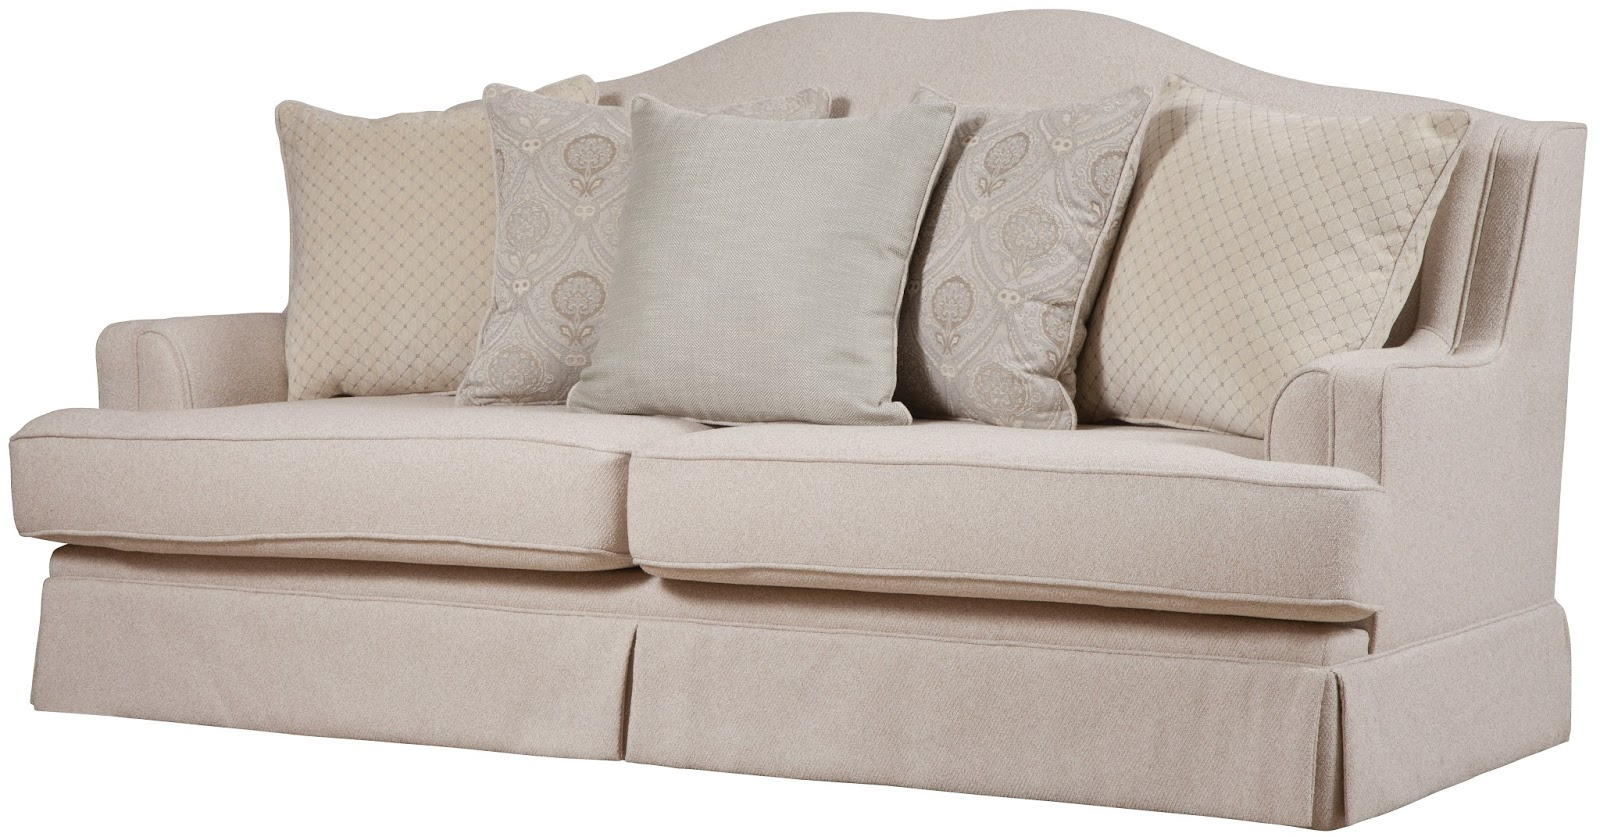 sofa in malaysia best sectional sofas los angeles fella design export collection